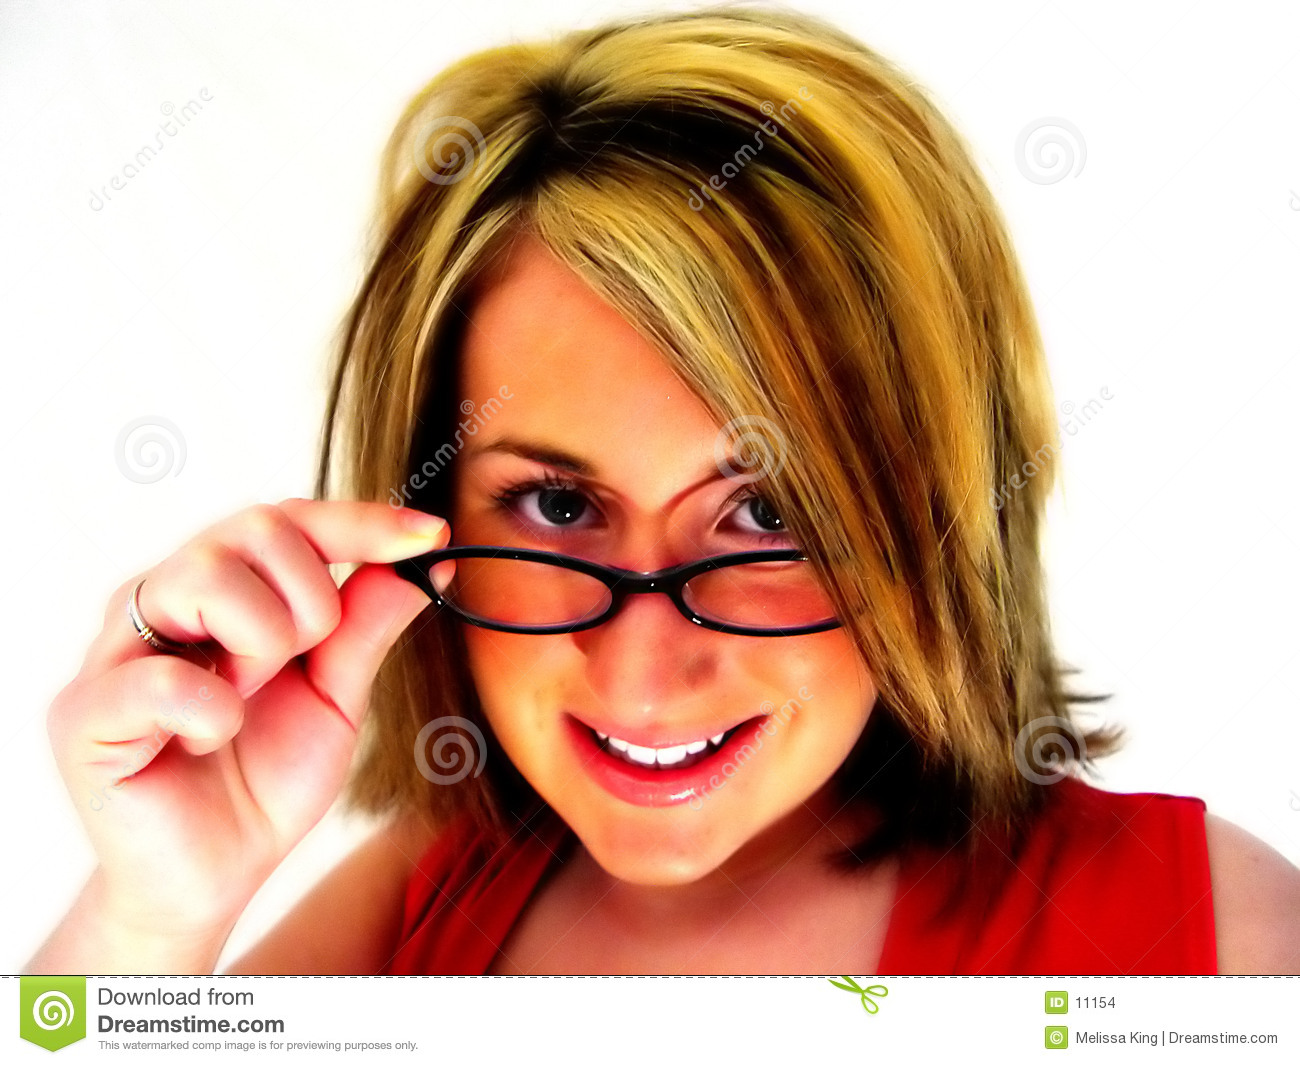 Abstract - Woman looking over glasses